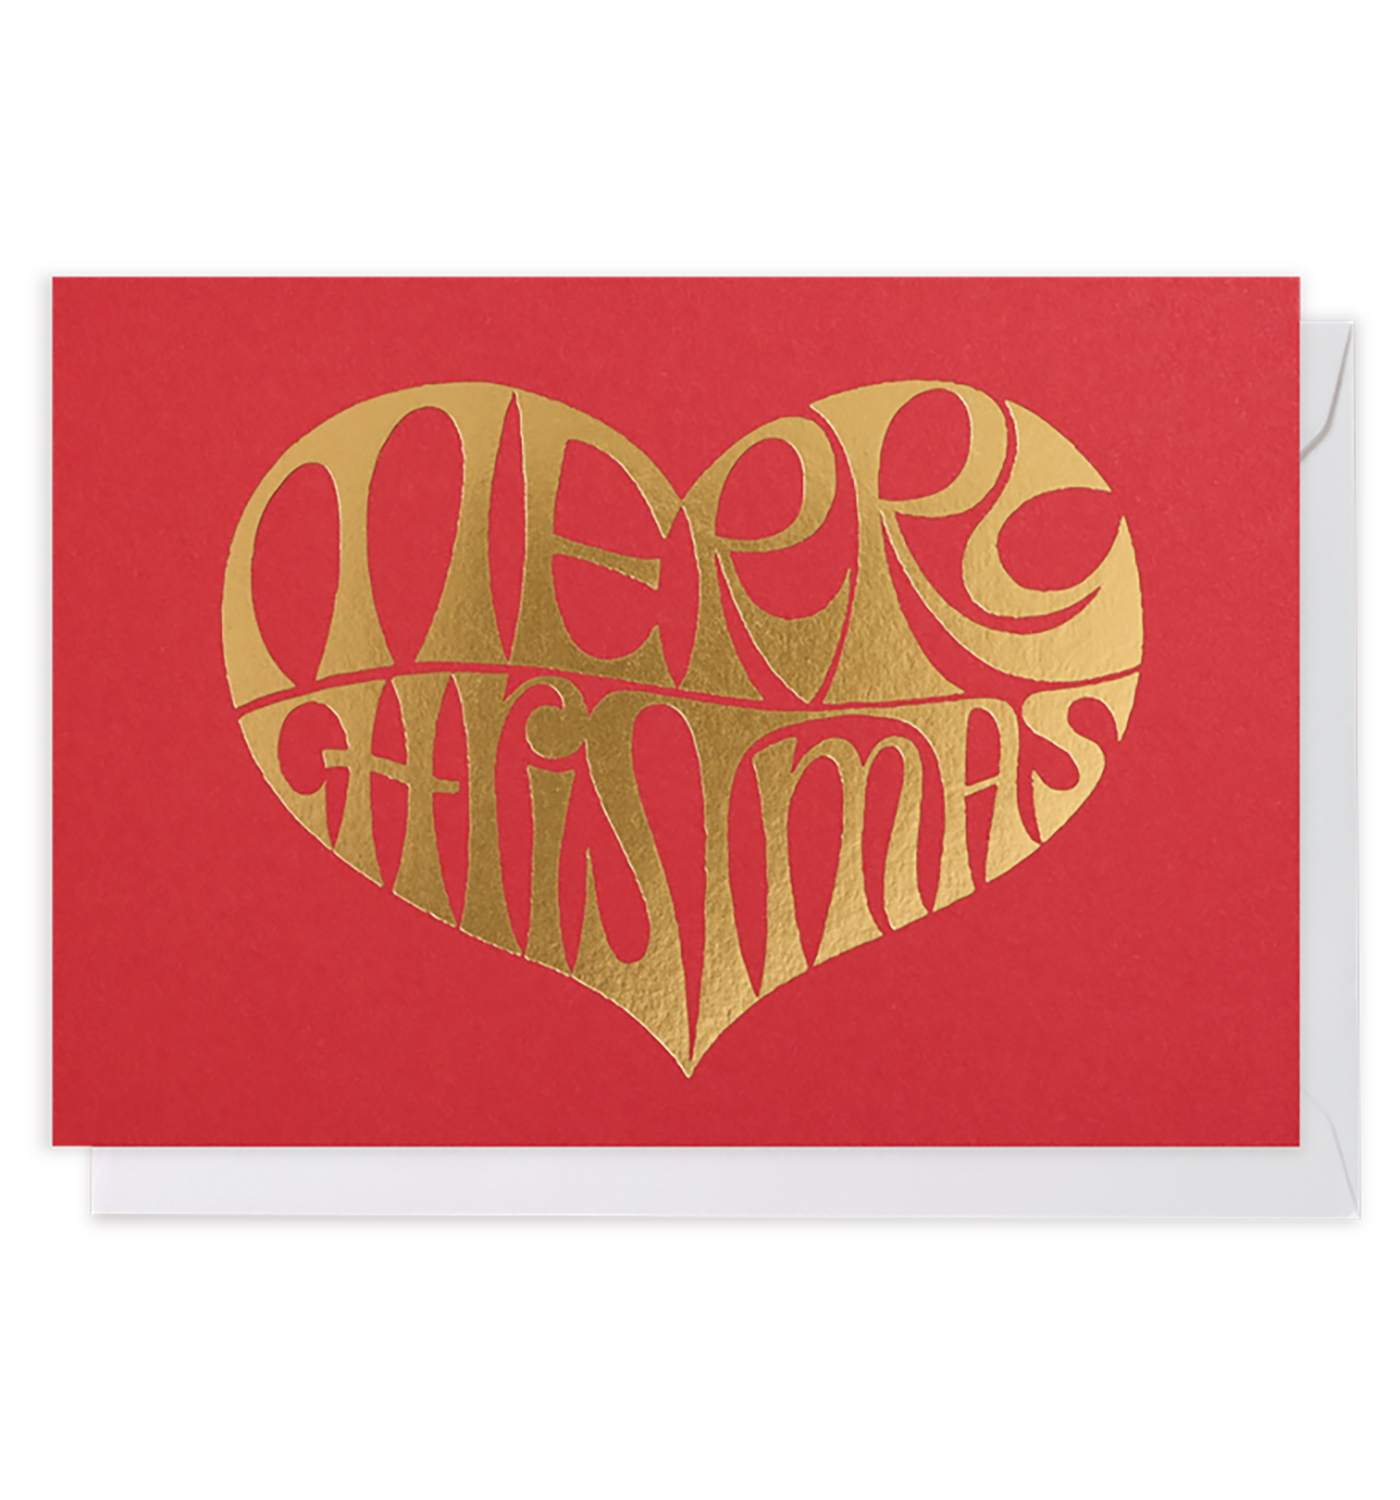 Merry Christmas Card By Alexander Girard Is Bold, Colourful And